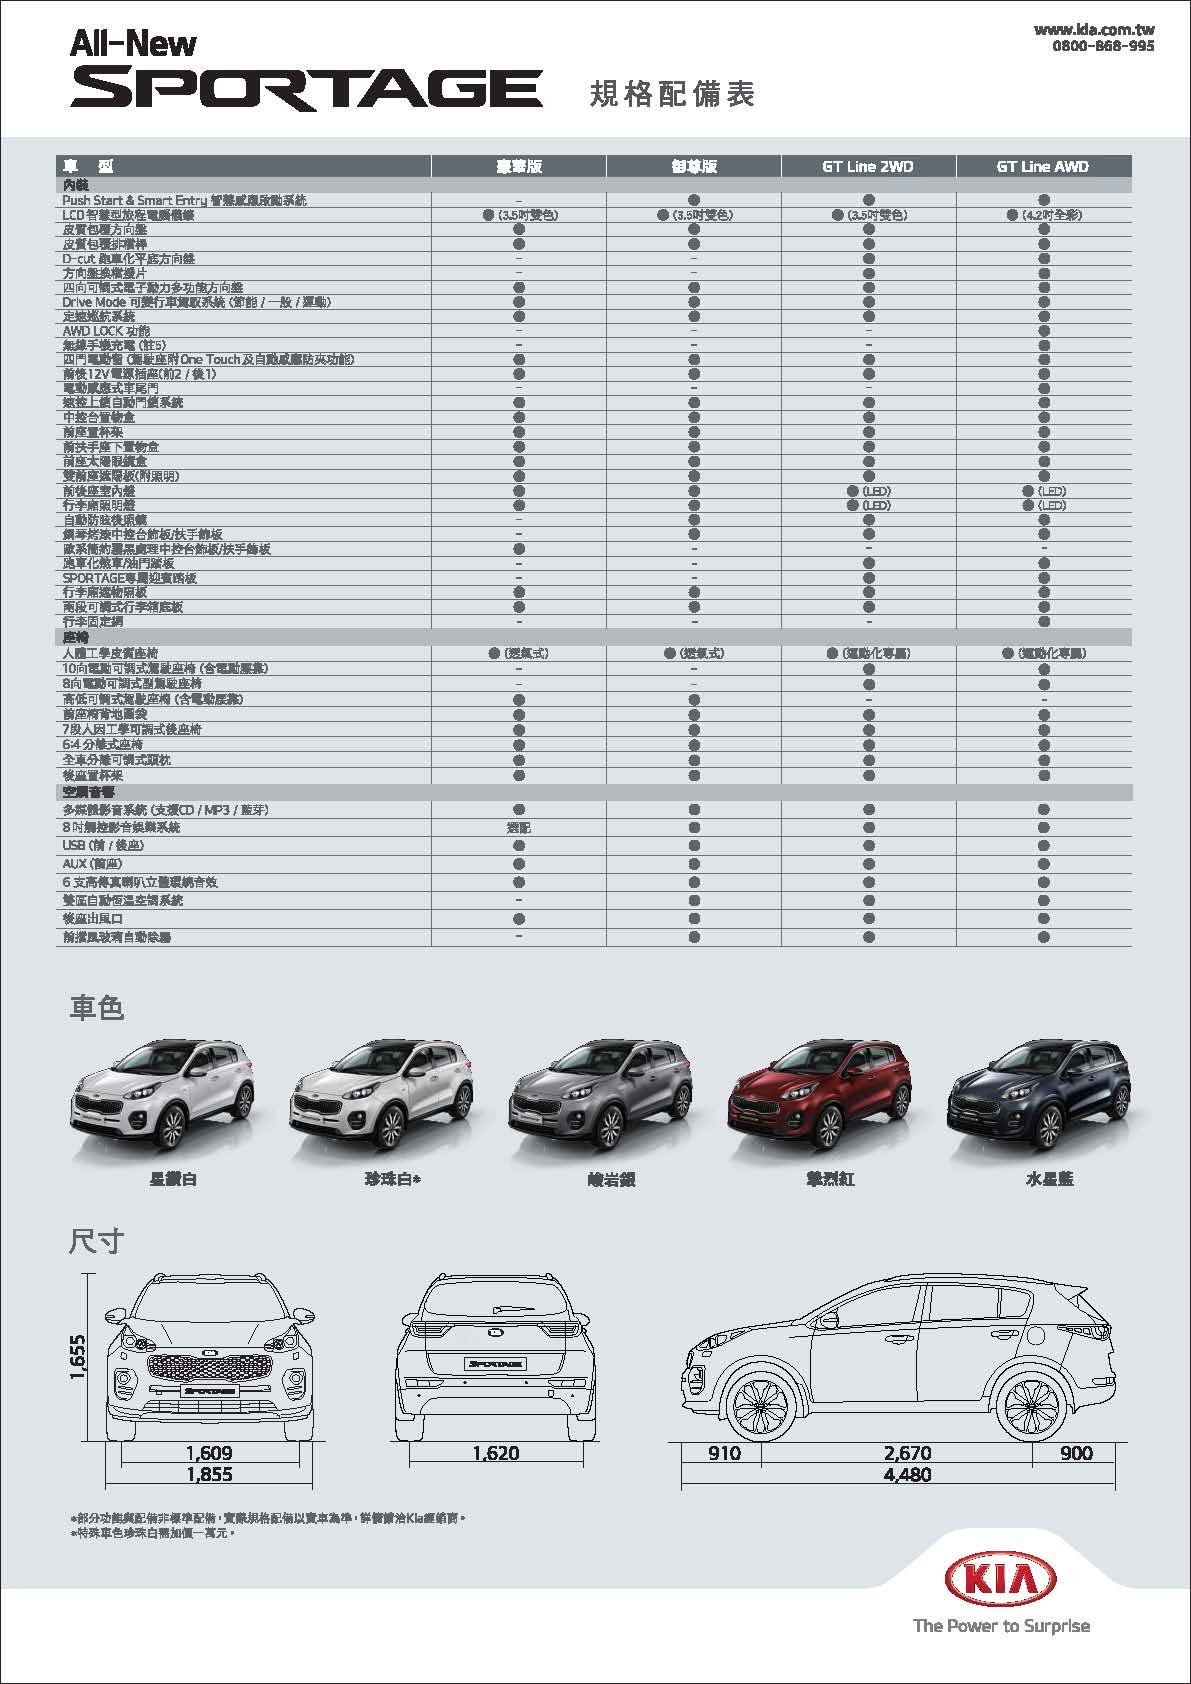 KIA All New Sportage規格配備表_頁面_1